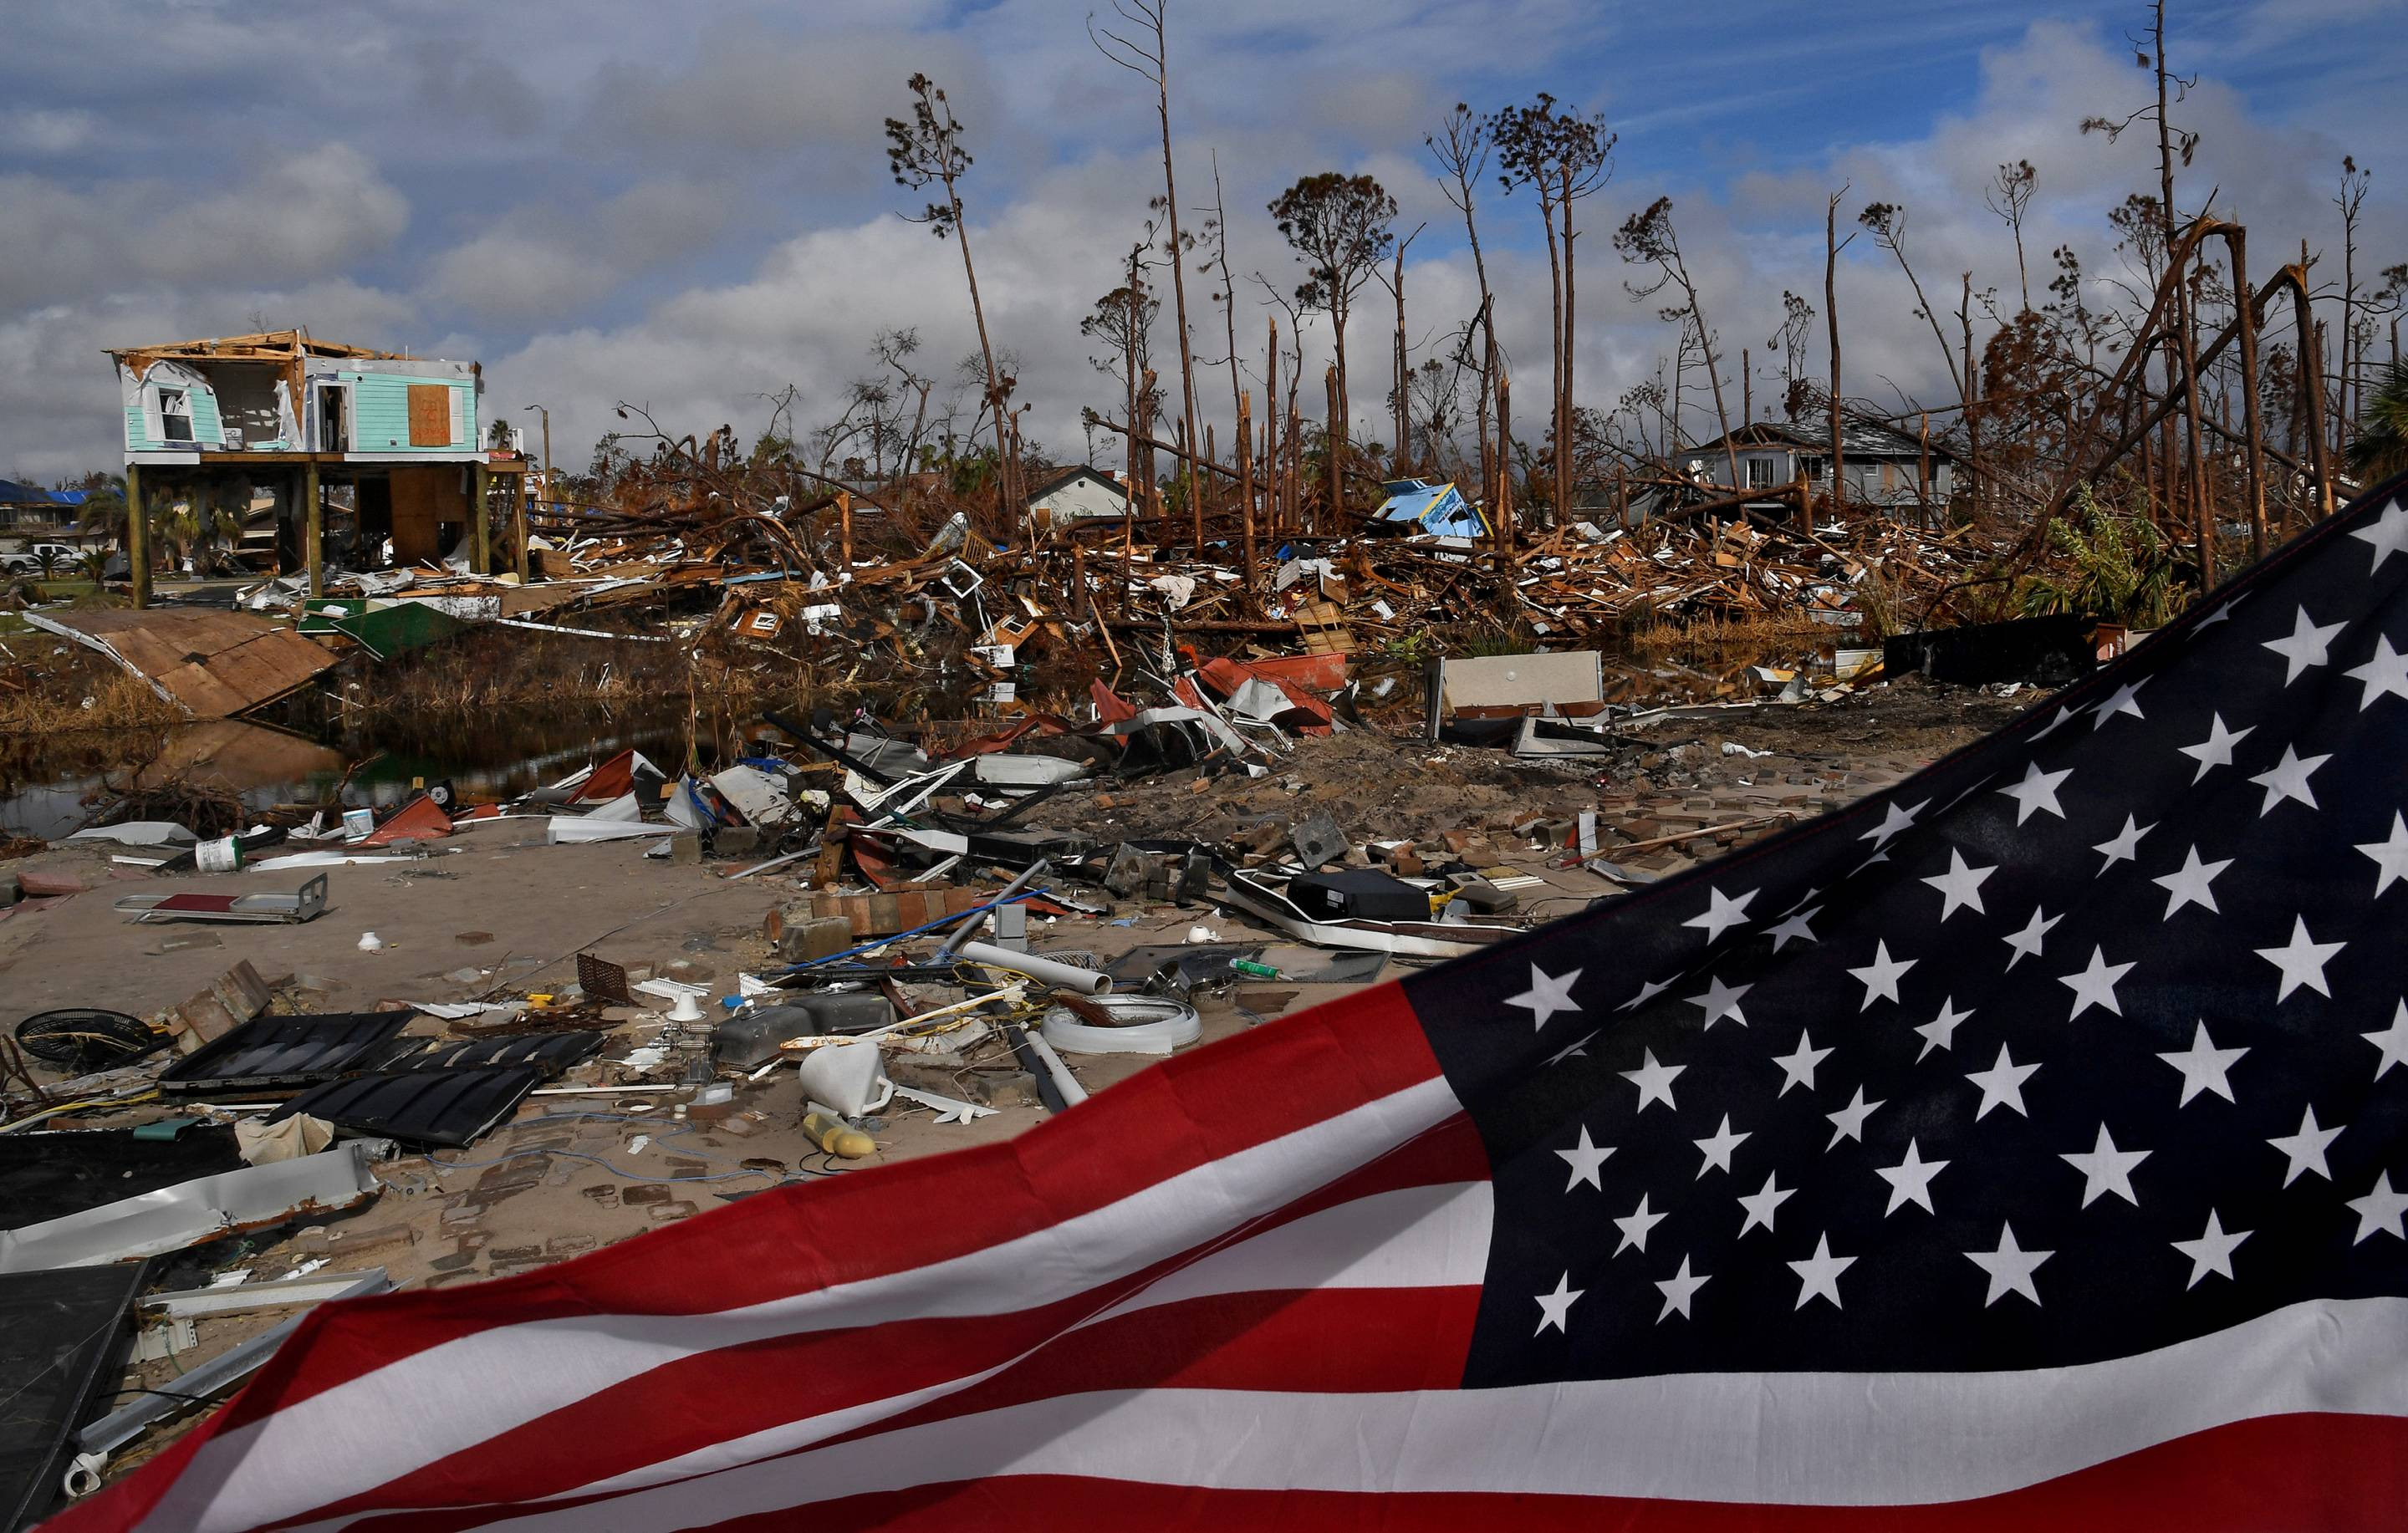 One Month Anniversary of Hurricane Michael is on November 11th